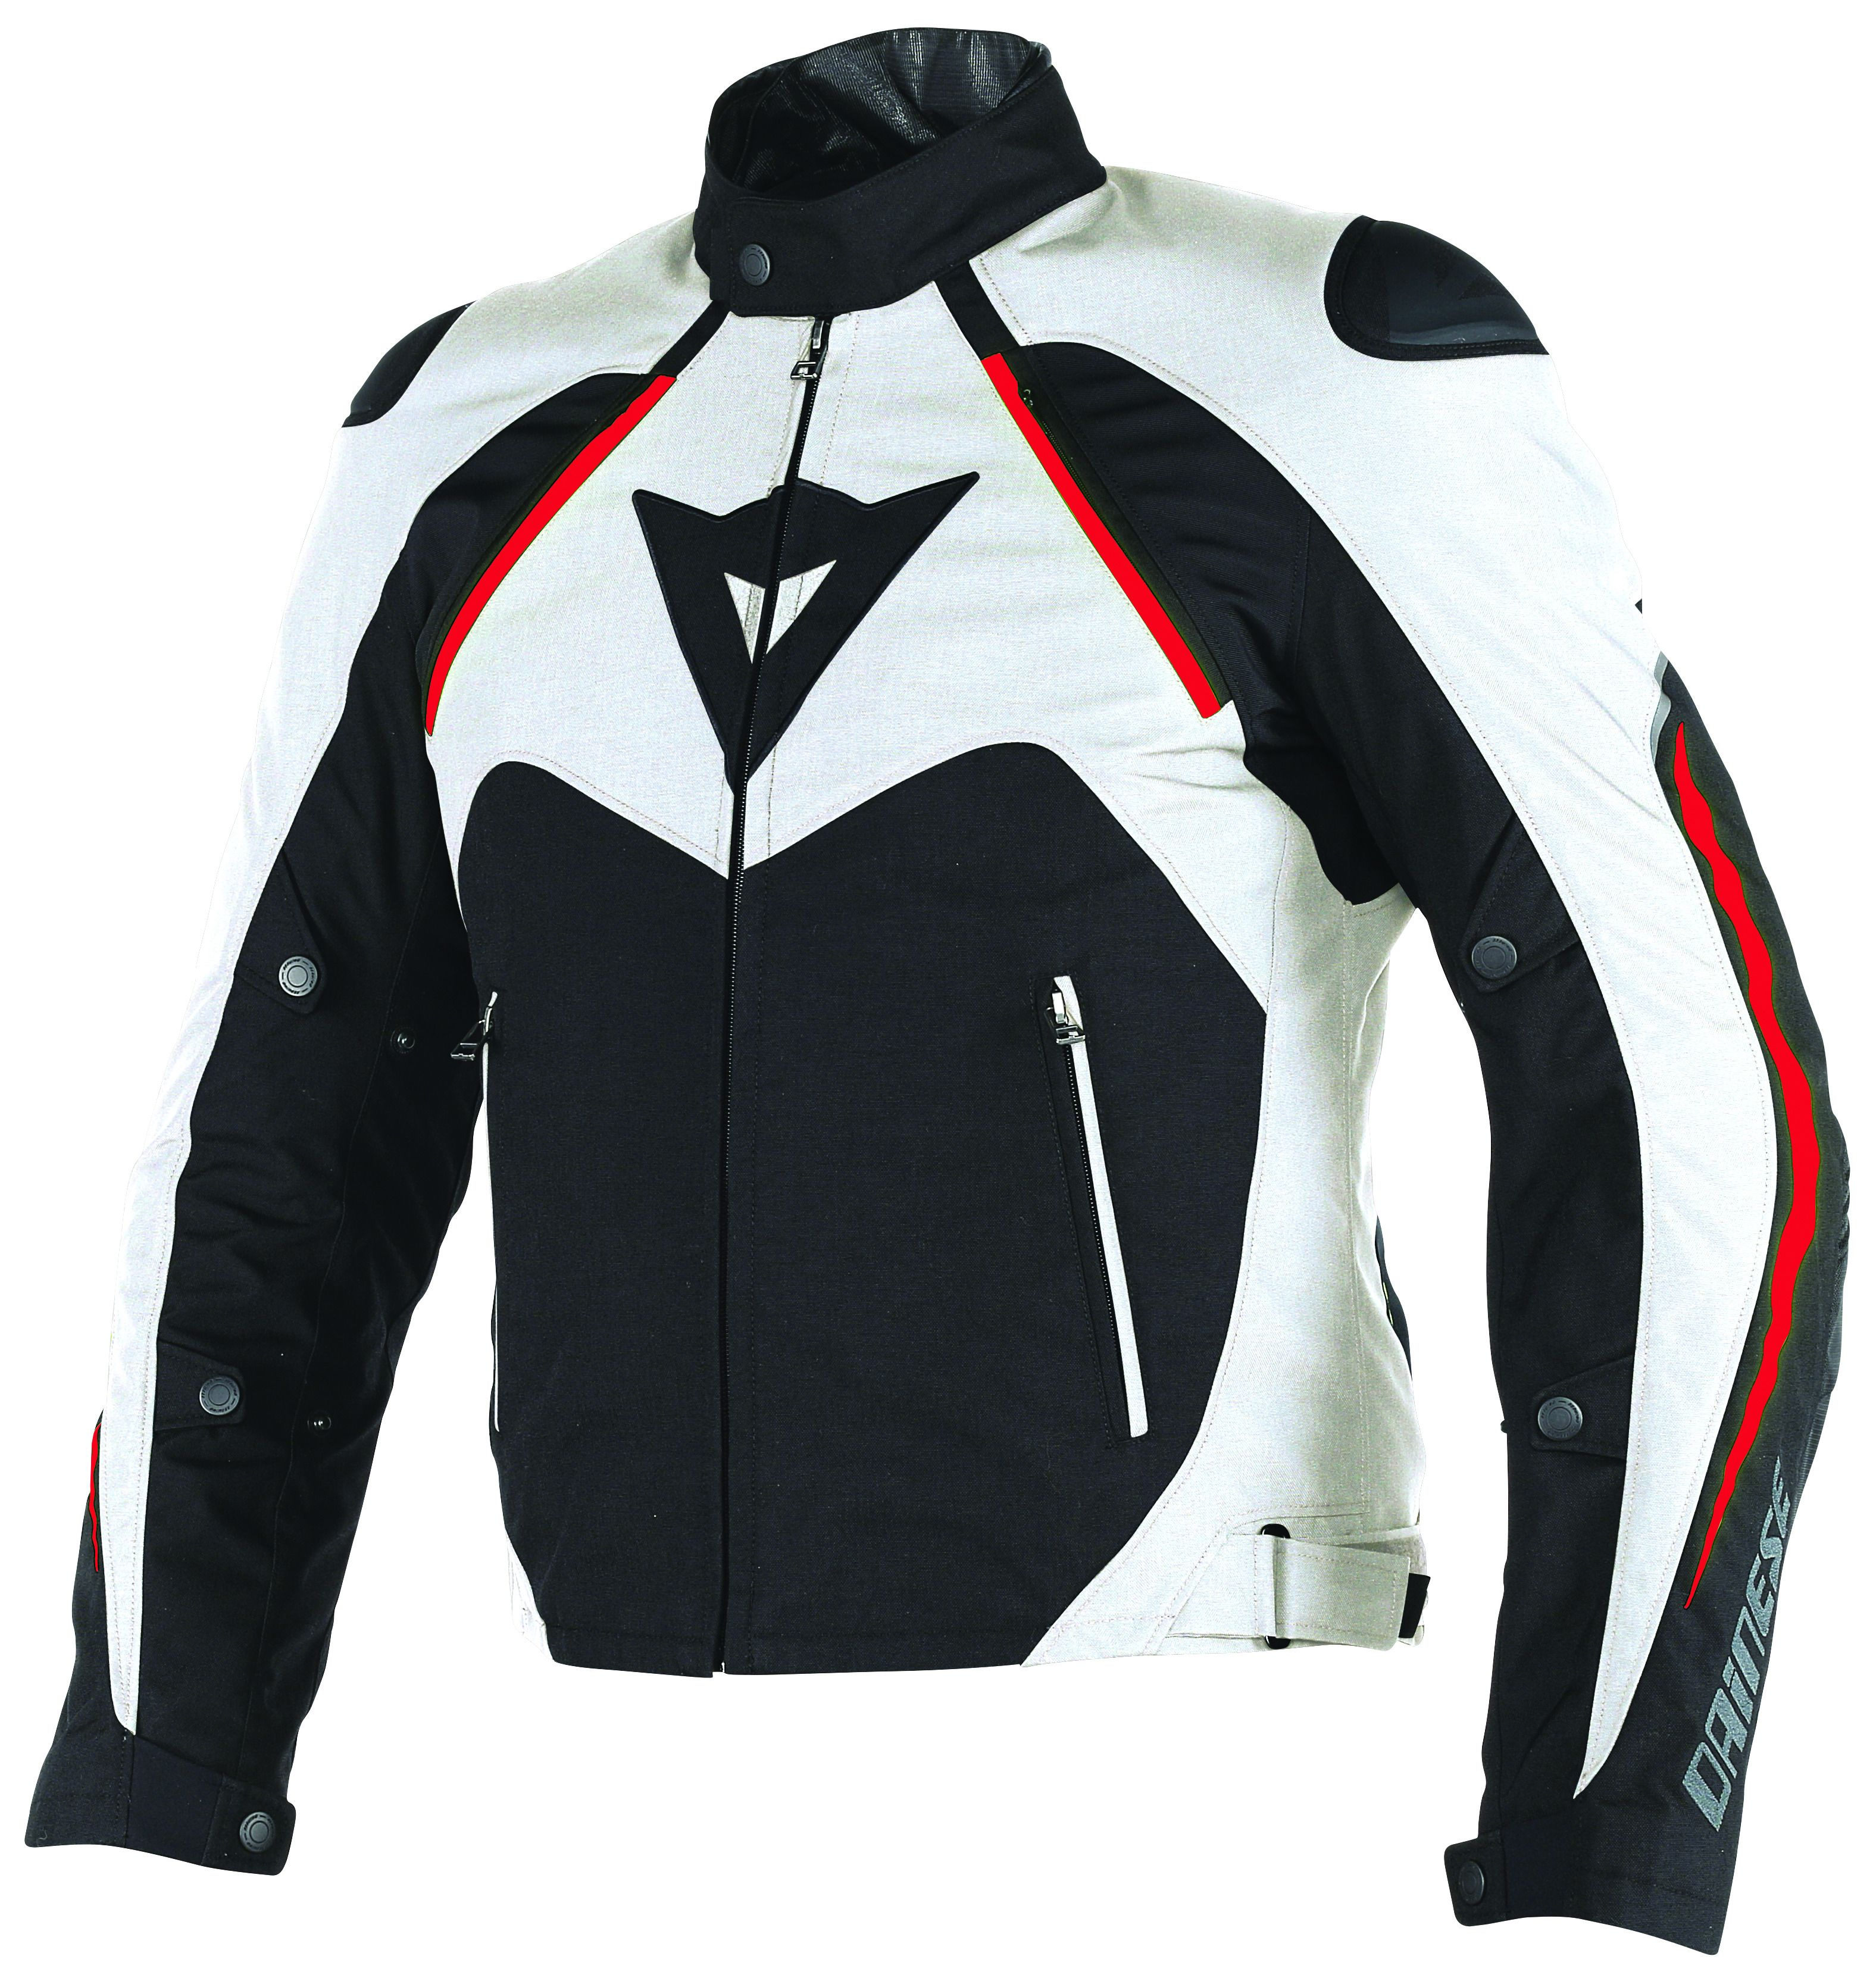 Dainese hawker d dry jacket revzilla for D garage dainese corbeil horaires